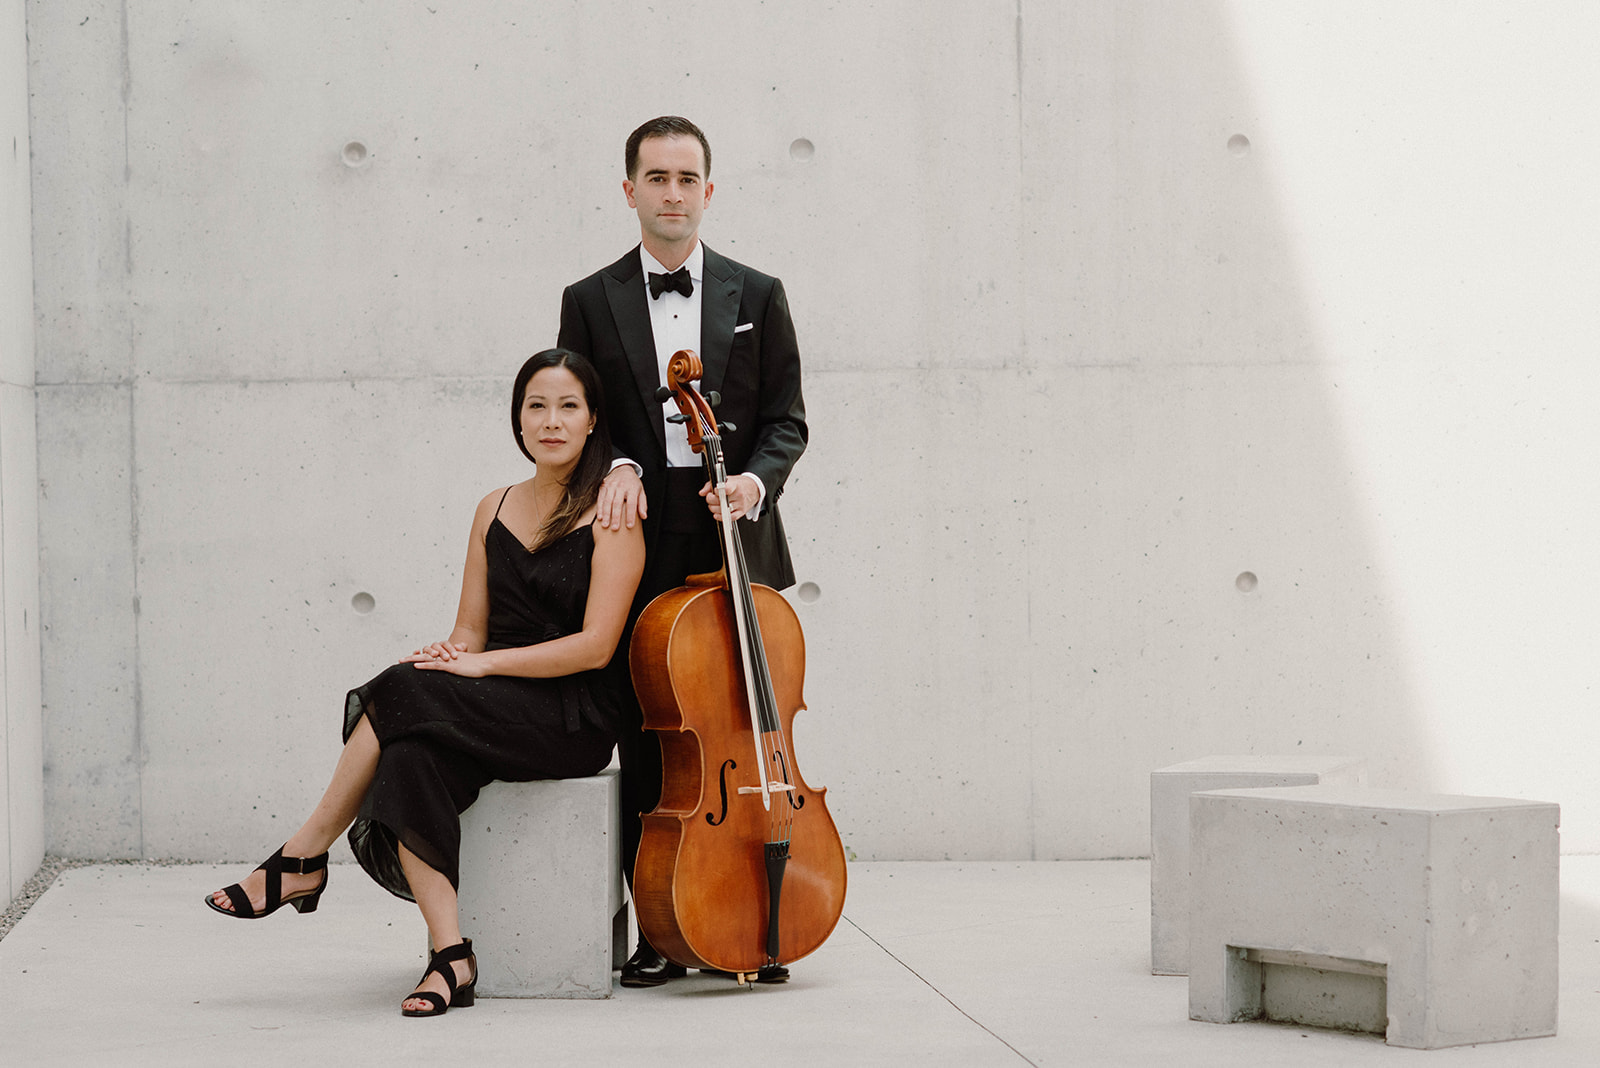 Luxe Duo Branding Shoot 61 - Luxe Duo Music Ottawa - Cello and Piano - Wedding Musicians Corporate Events Private Concerts